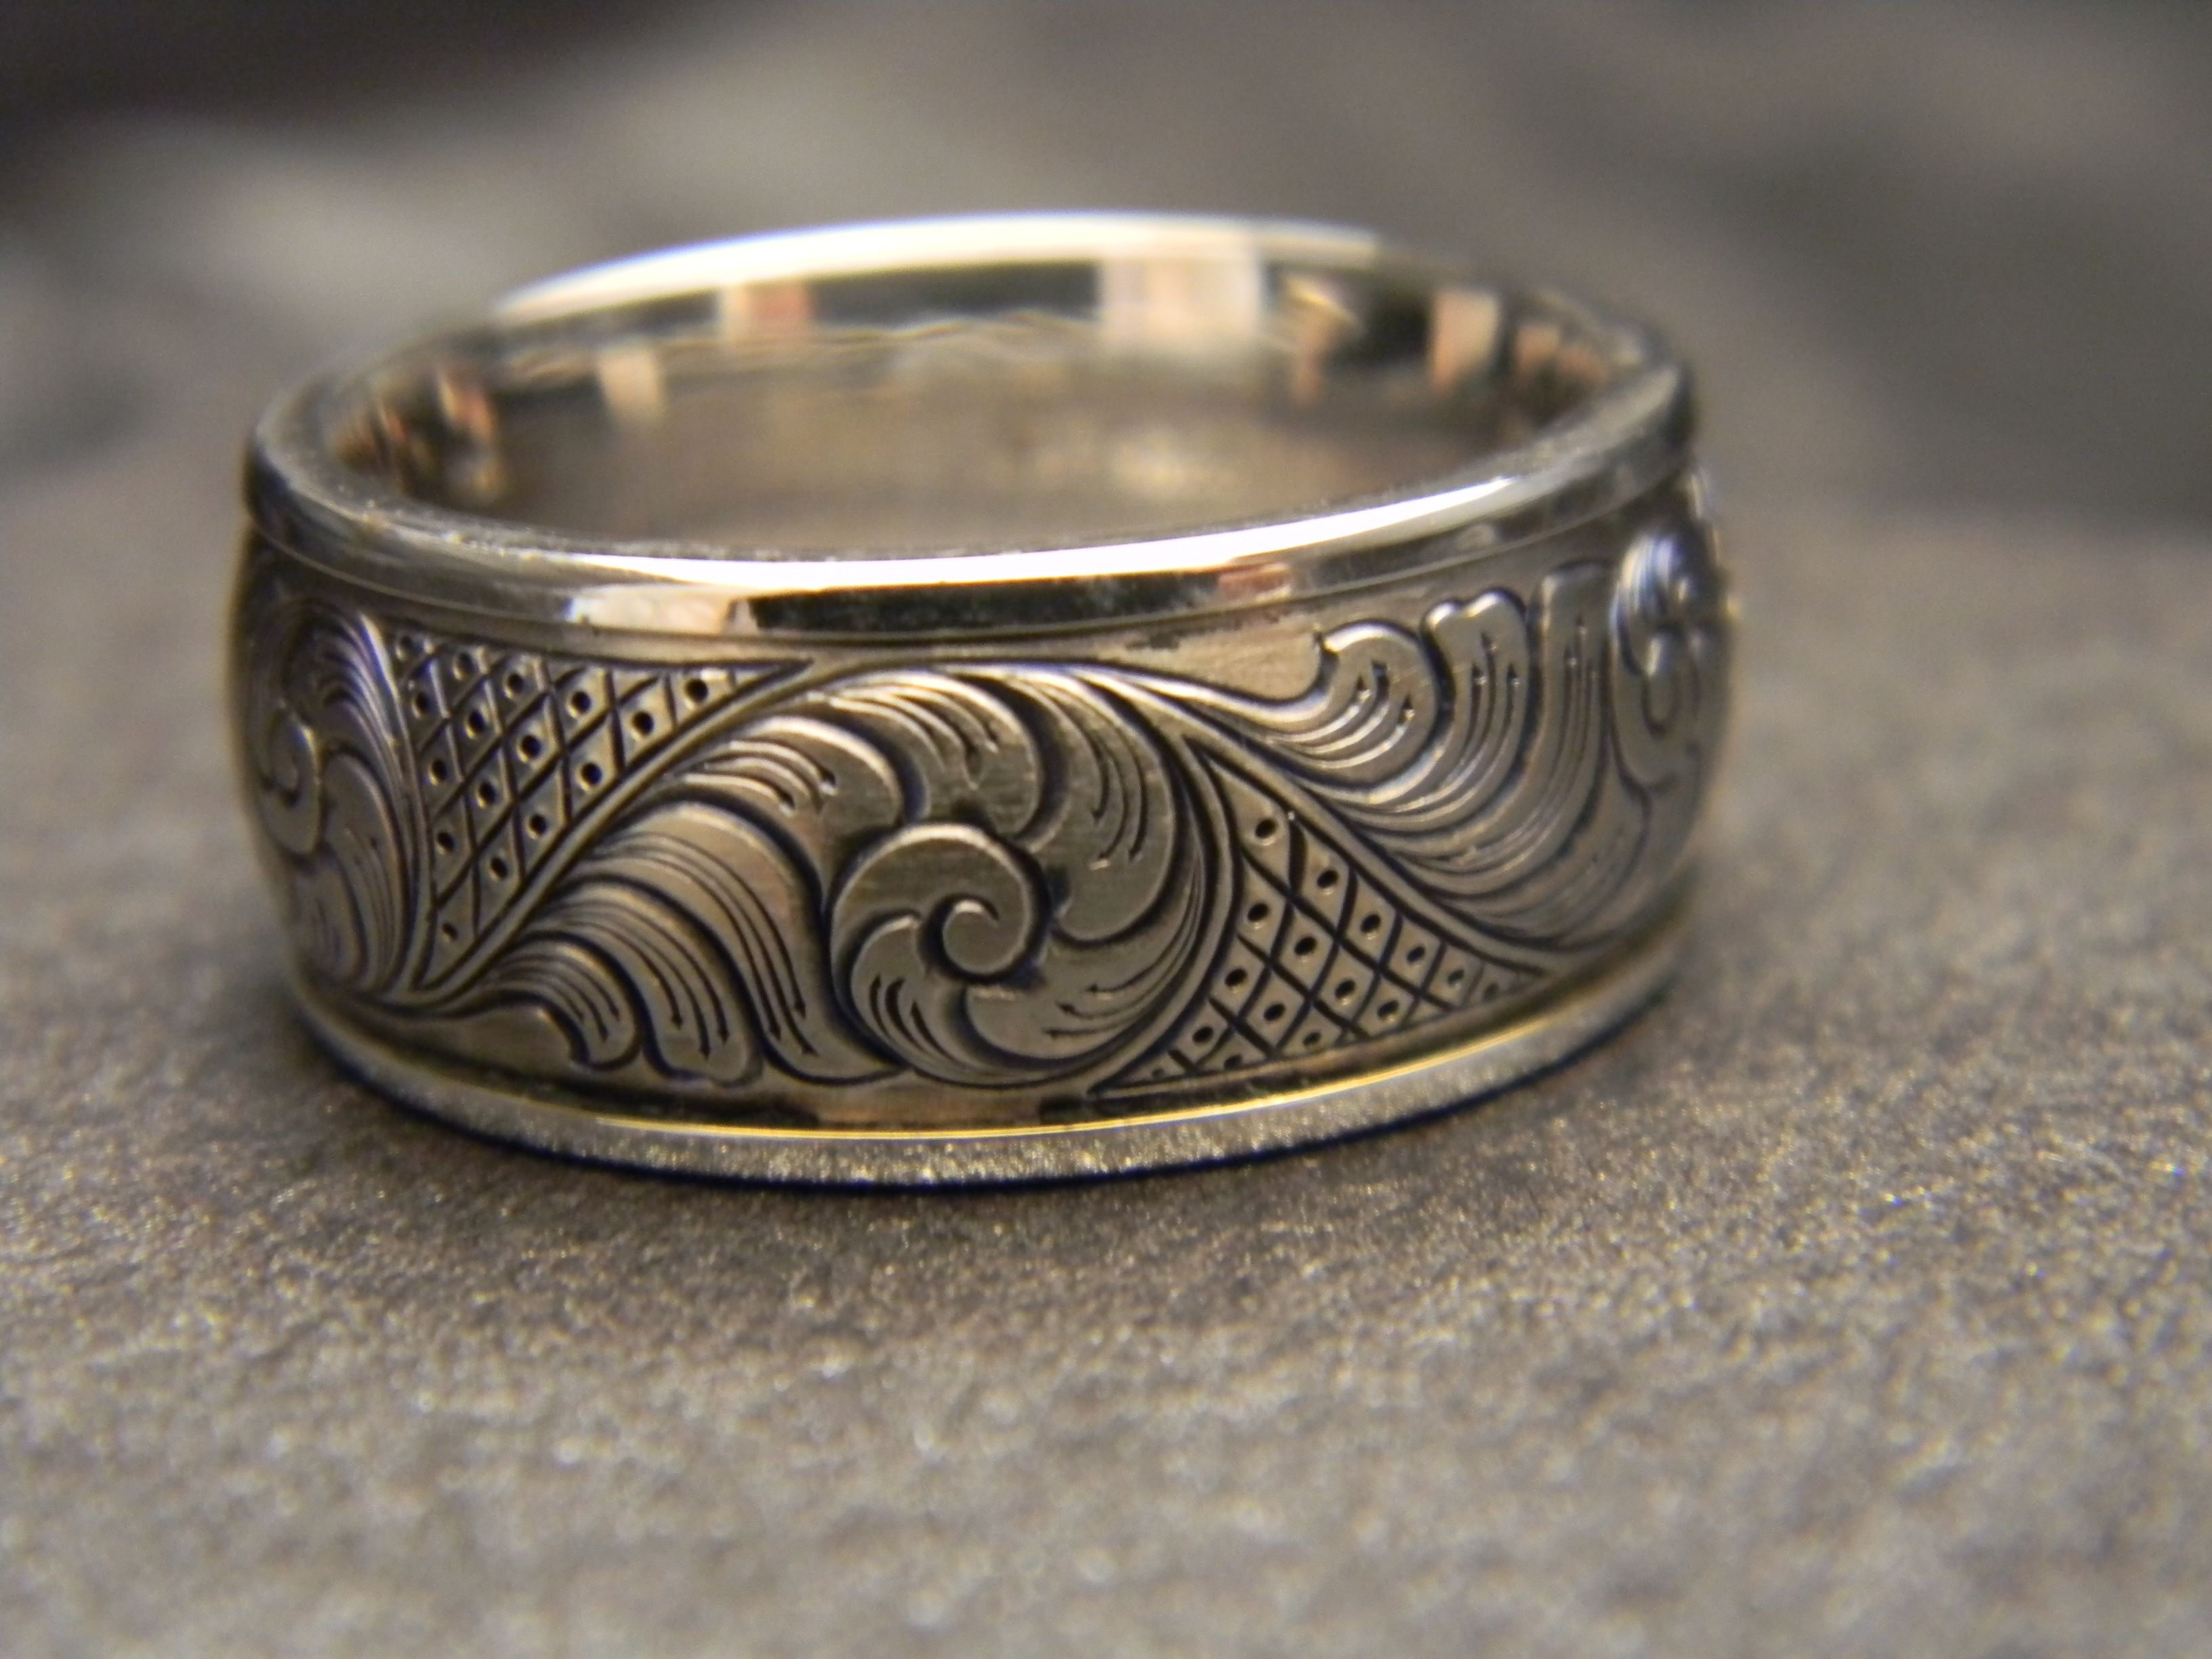 10mm wide titanium hand engraved ring with 14k white gold for Engraving on mens wedding rings